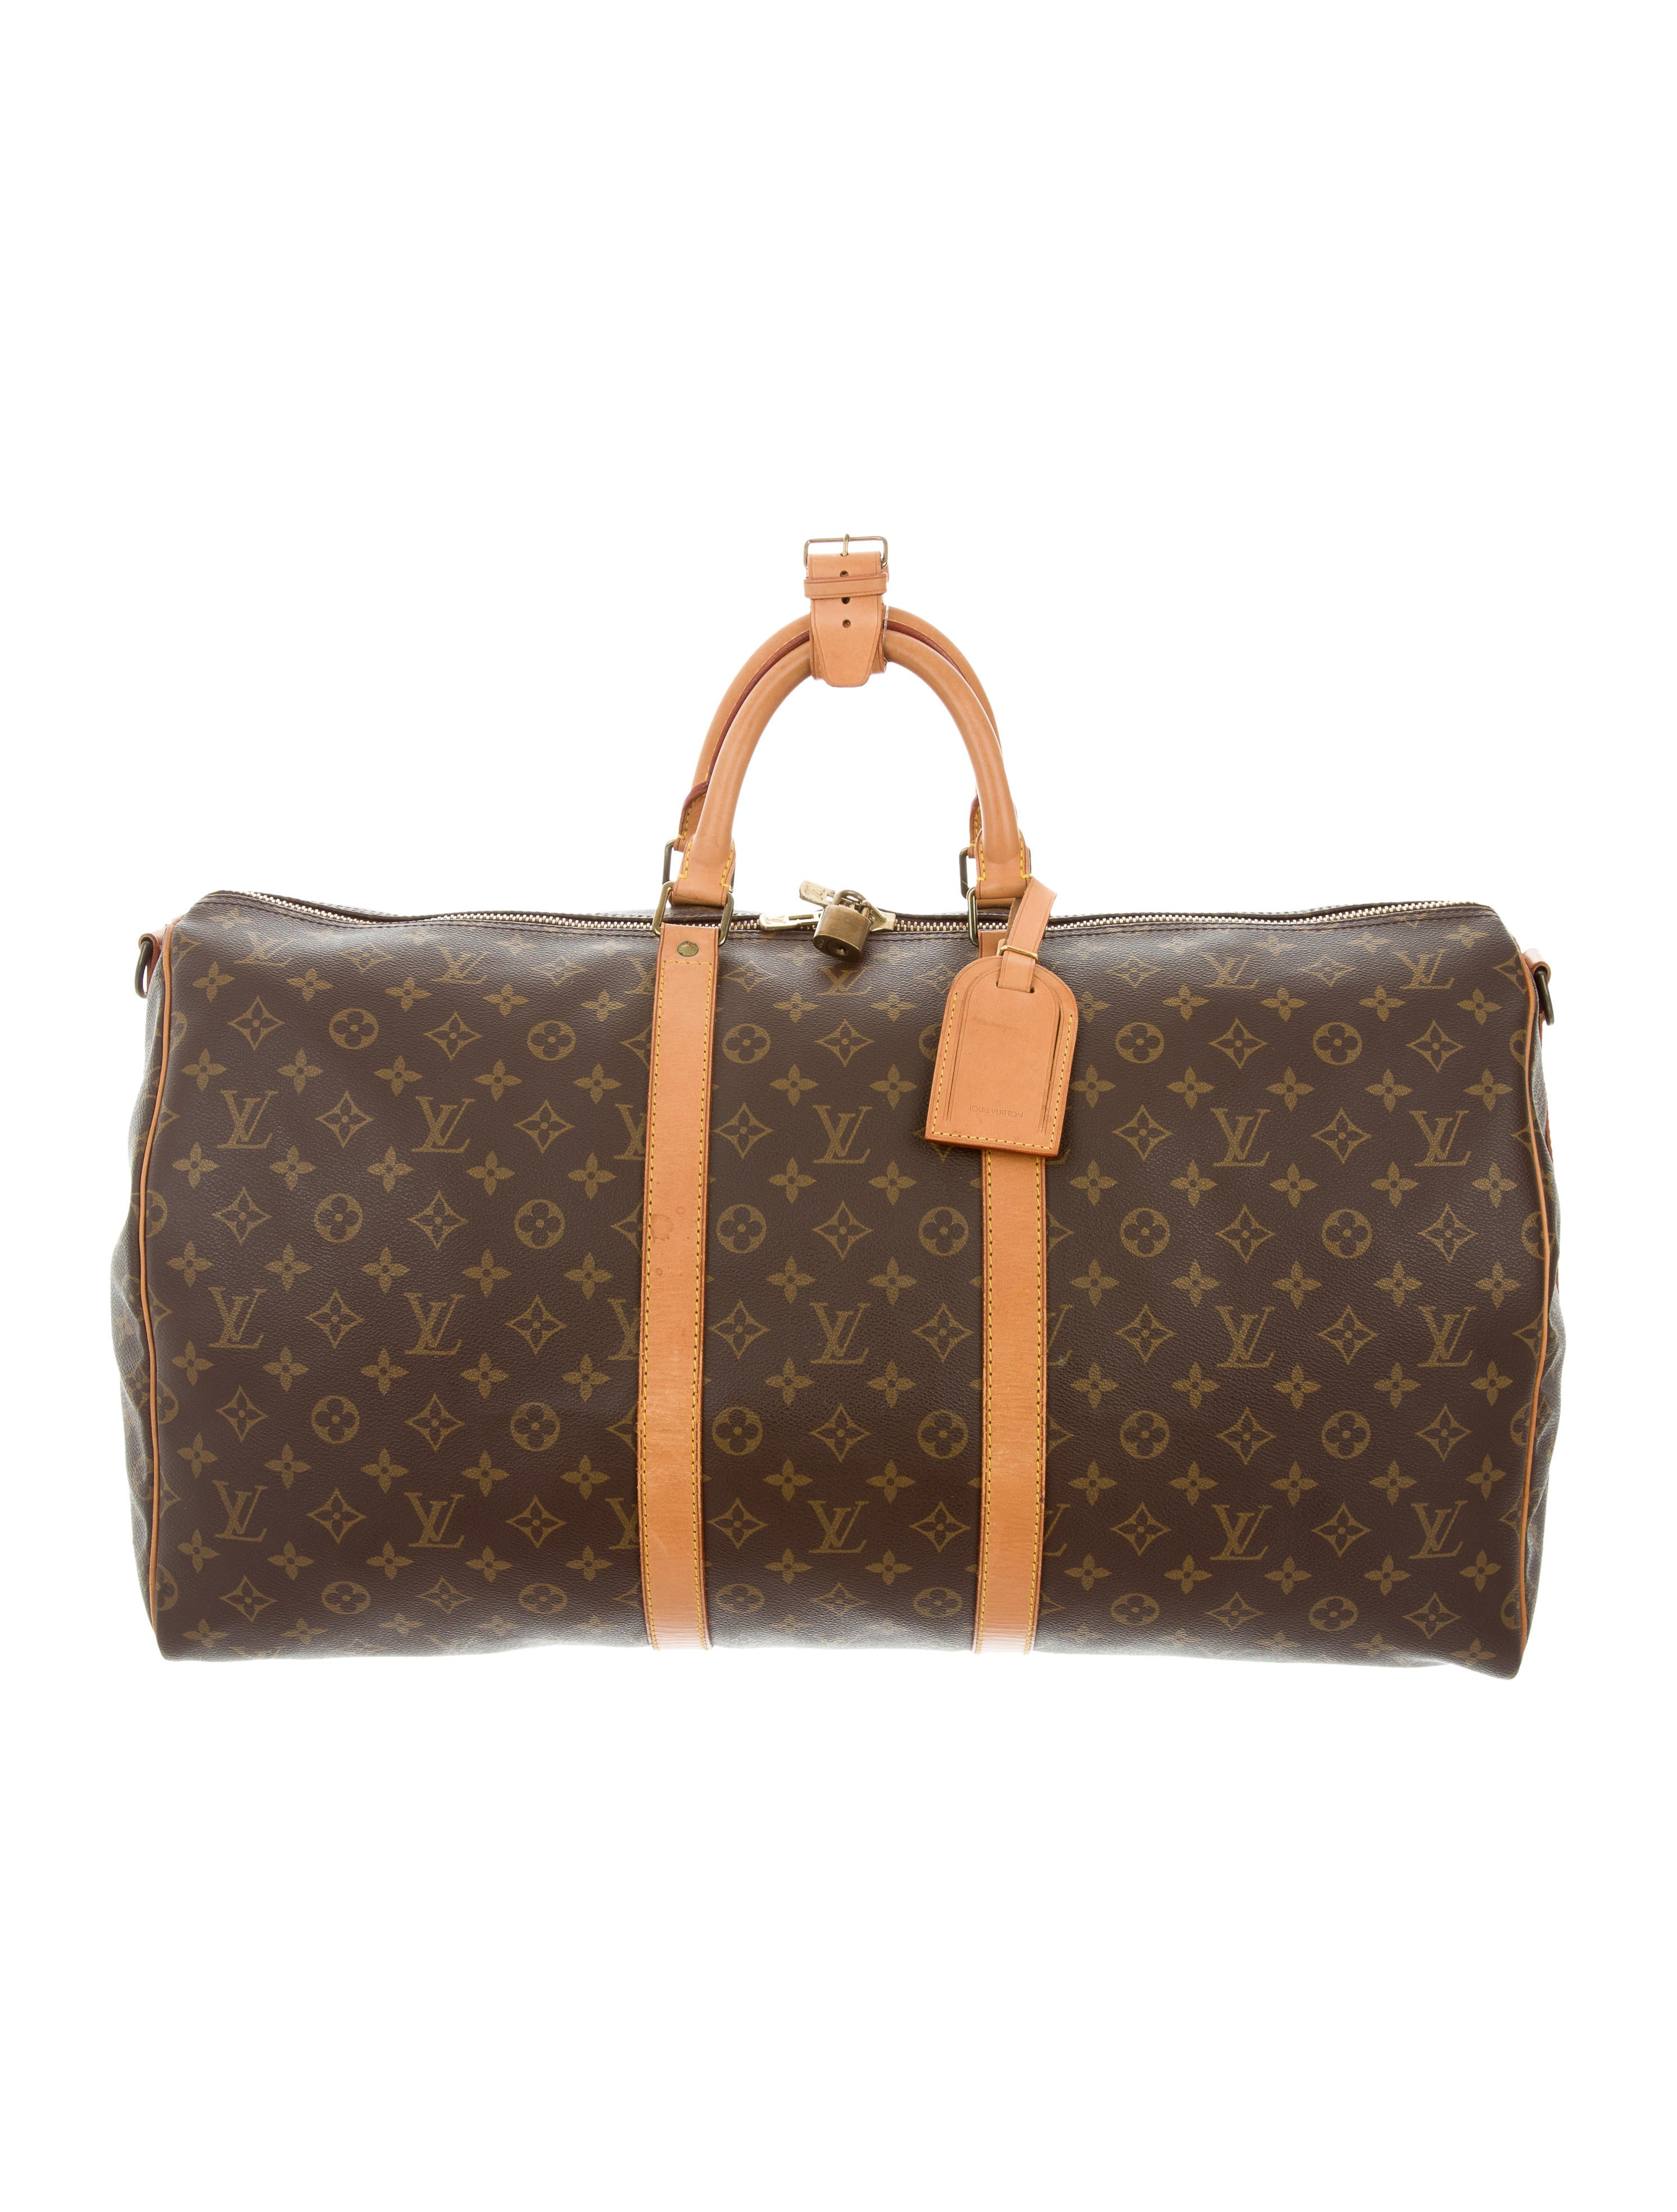 louis vuitton monogram keepall 55 bags lou120676 the. Black Bedroom Furniture Sets. Home Design Ideas